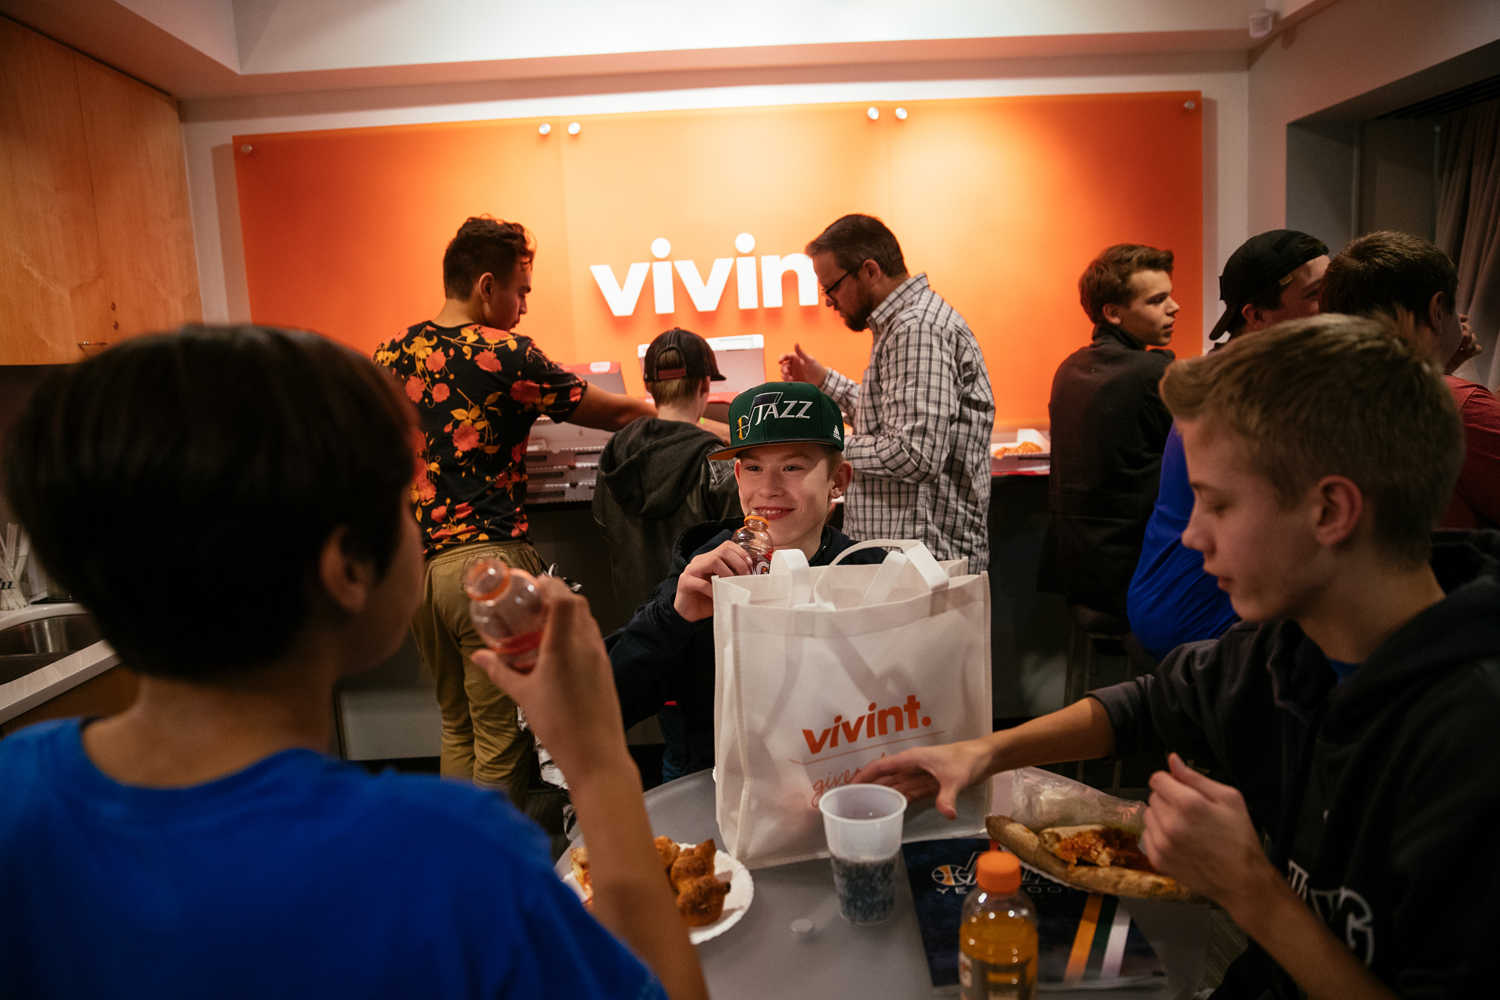 Vivint Gives Back hosts sensory tours at the Vivint Smart Home Arena